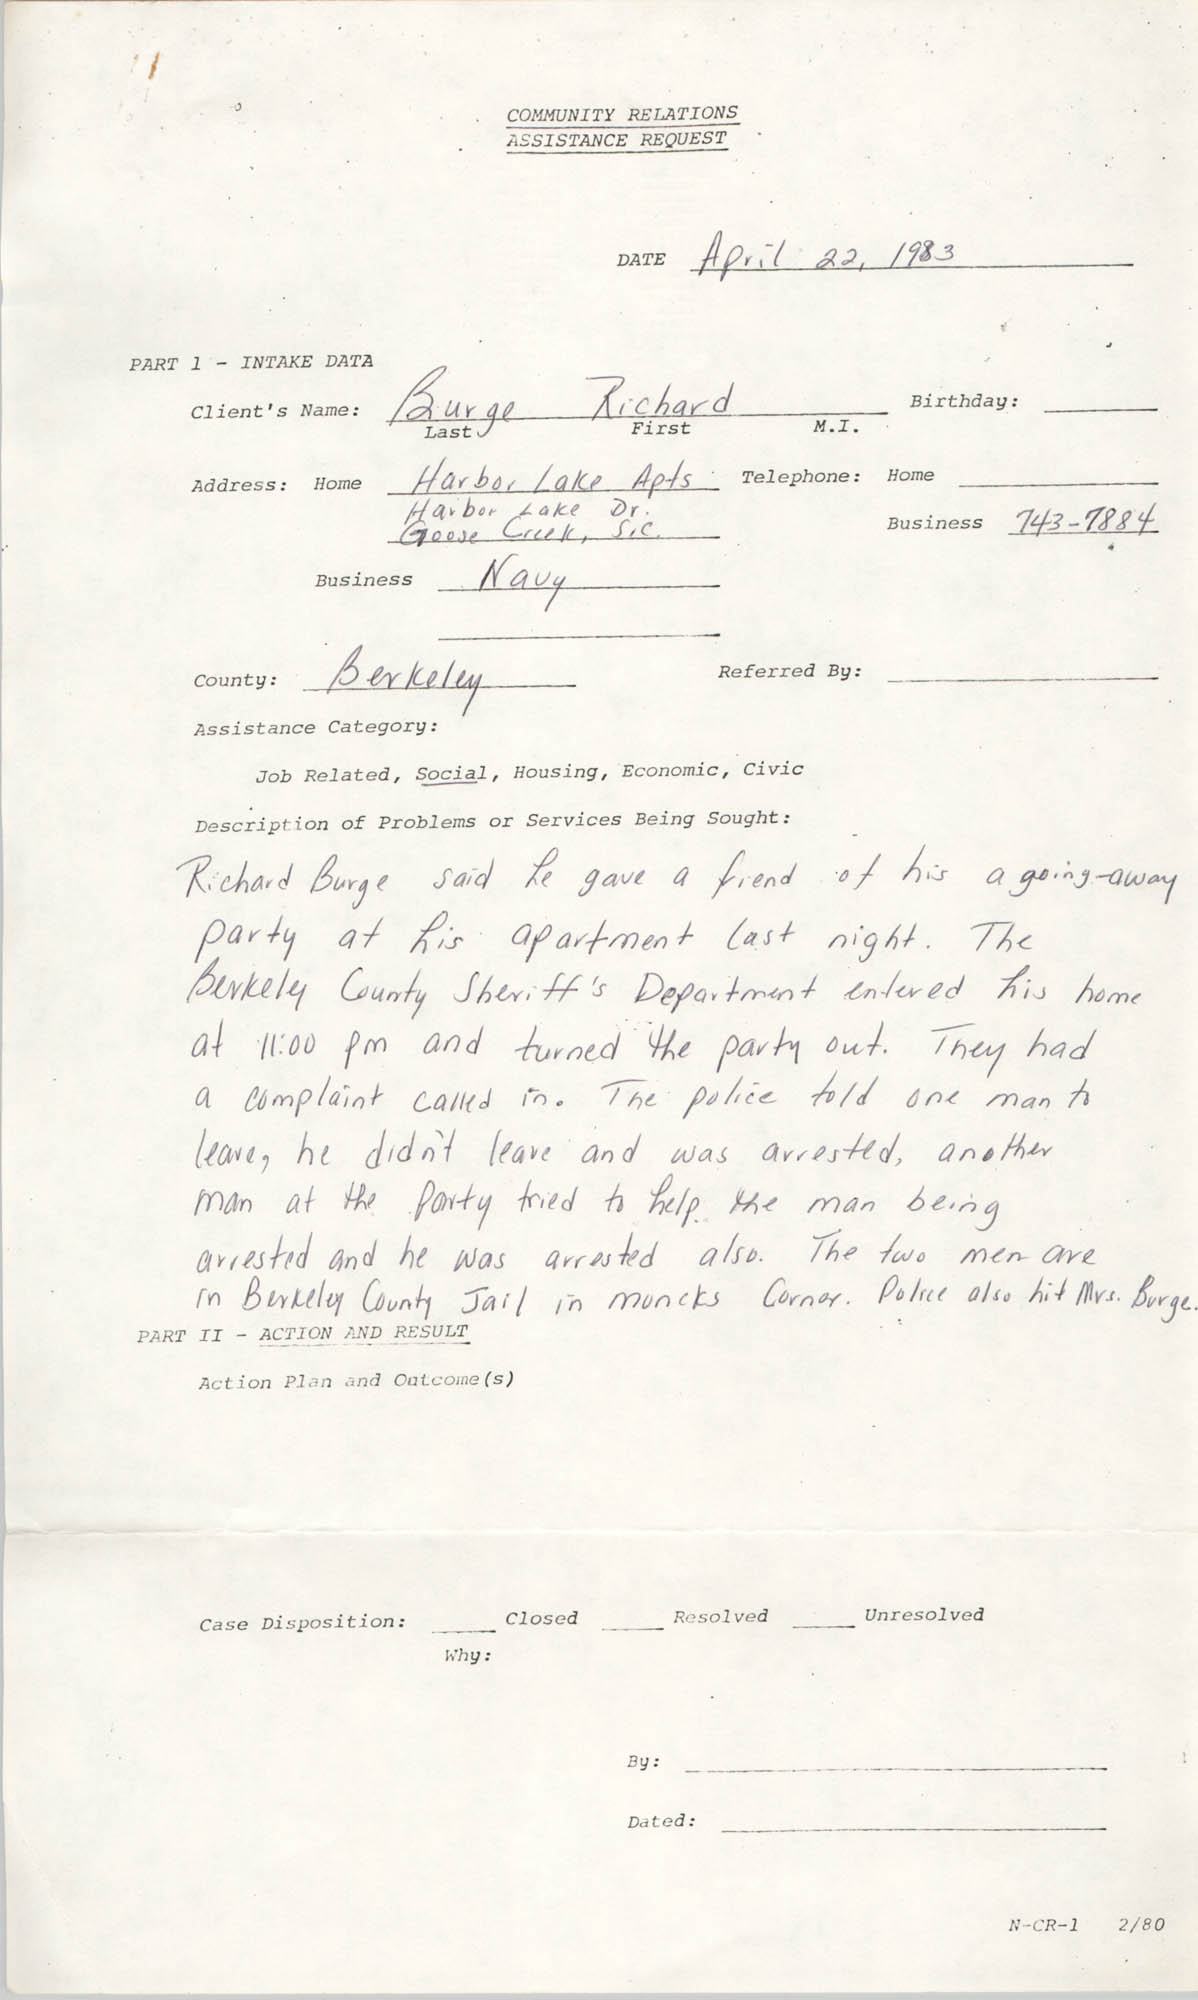 Community Relations Assistance Request, April 22, 1983